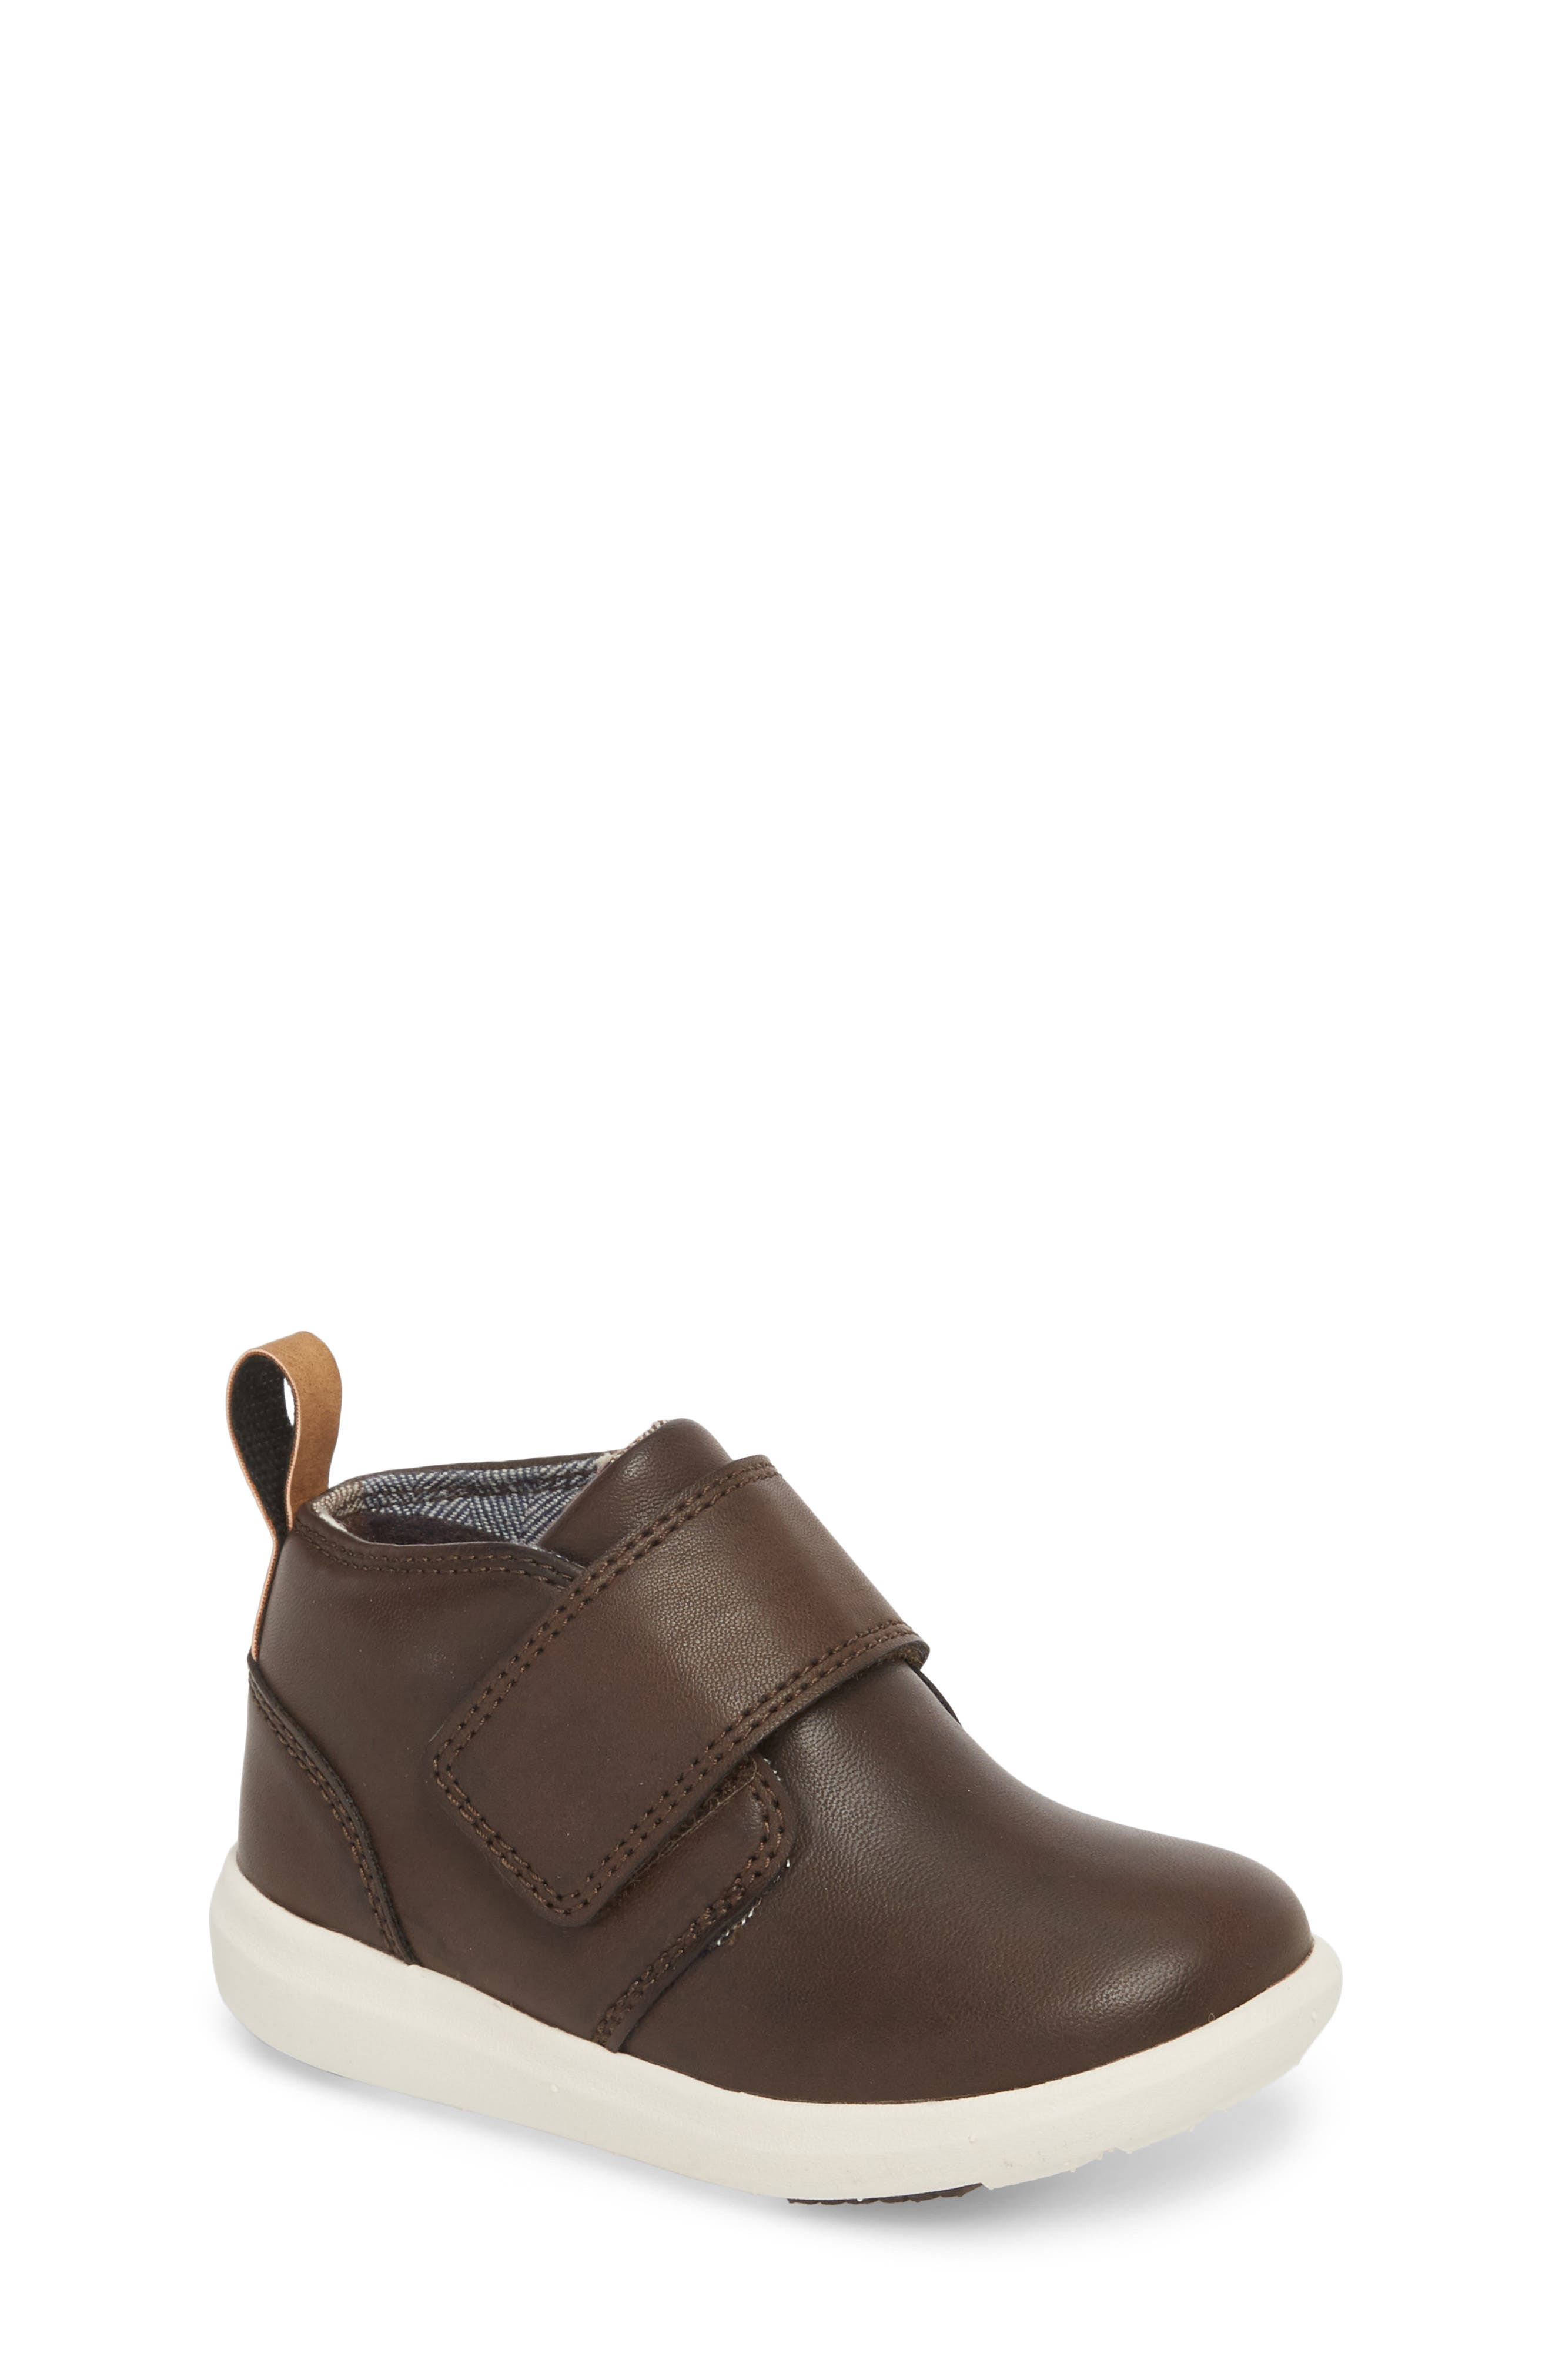 Oliver Low Bootie Sneaker,                         Main,                         color, CHOCOLATE FAUX LEATHER